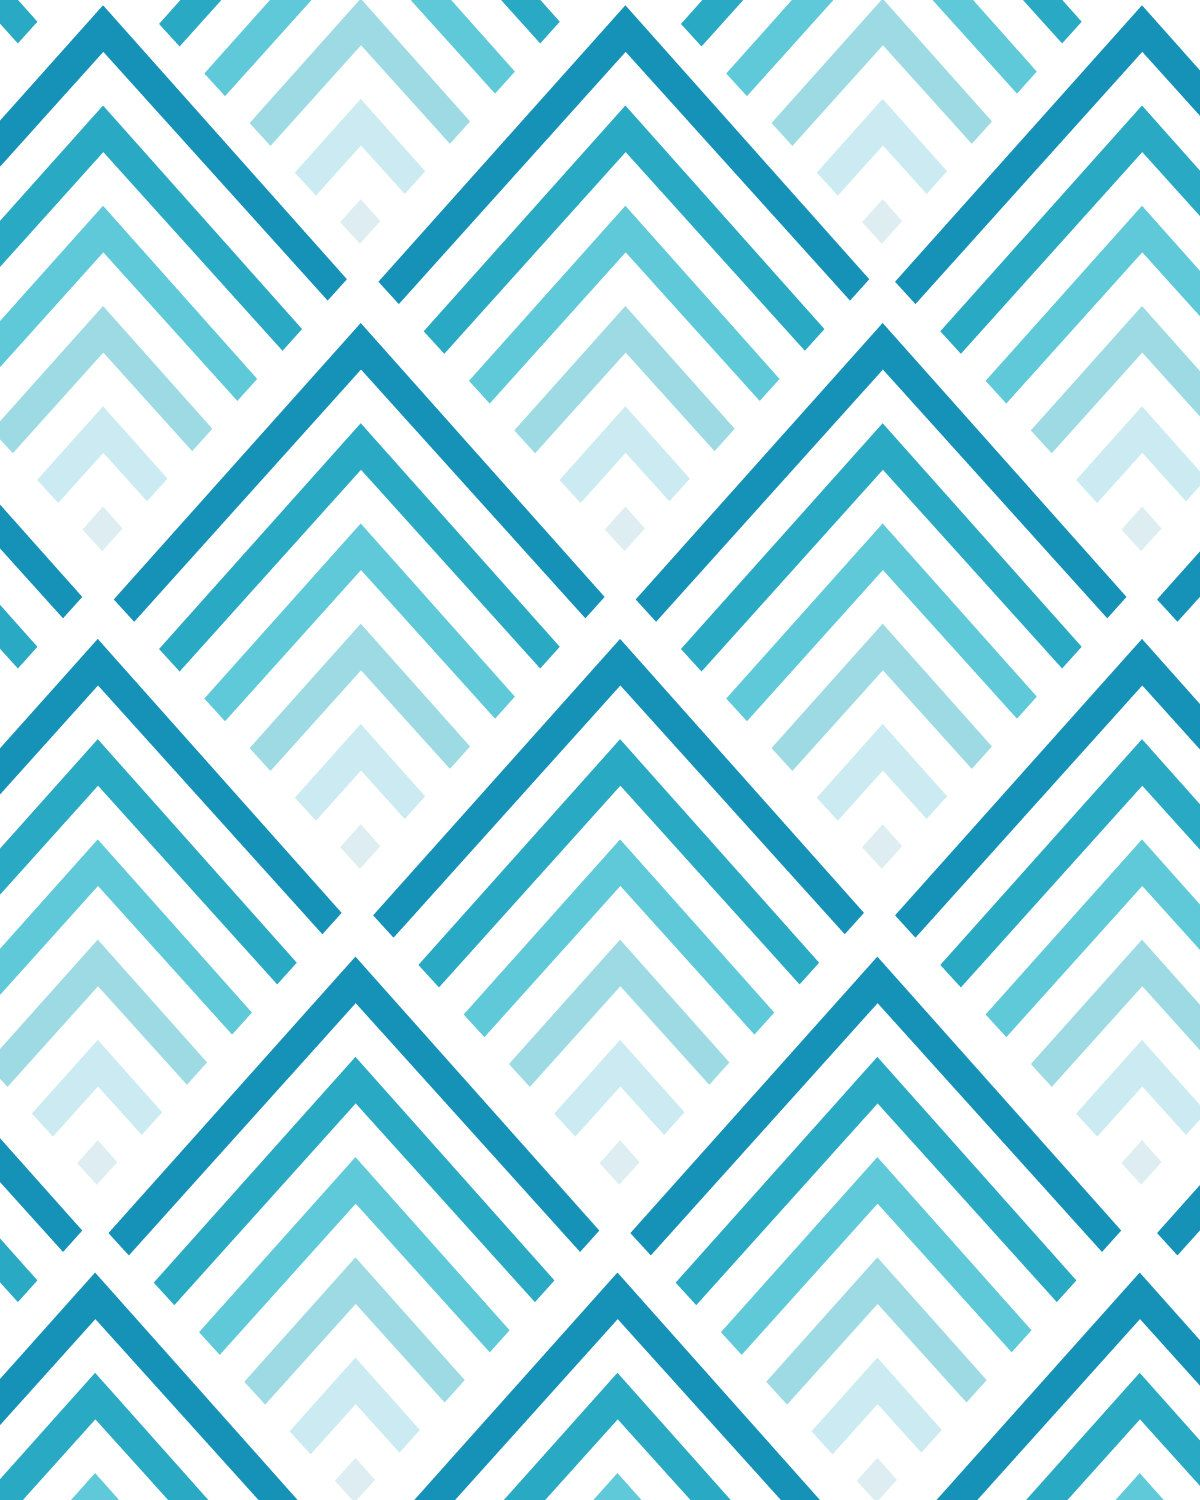 Shades of Blue - Chevron Pattern 8x10 inch Art Print. $17.00, via Etsy.